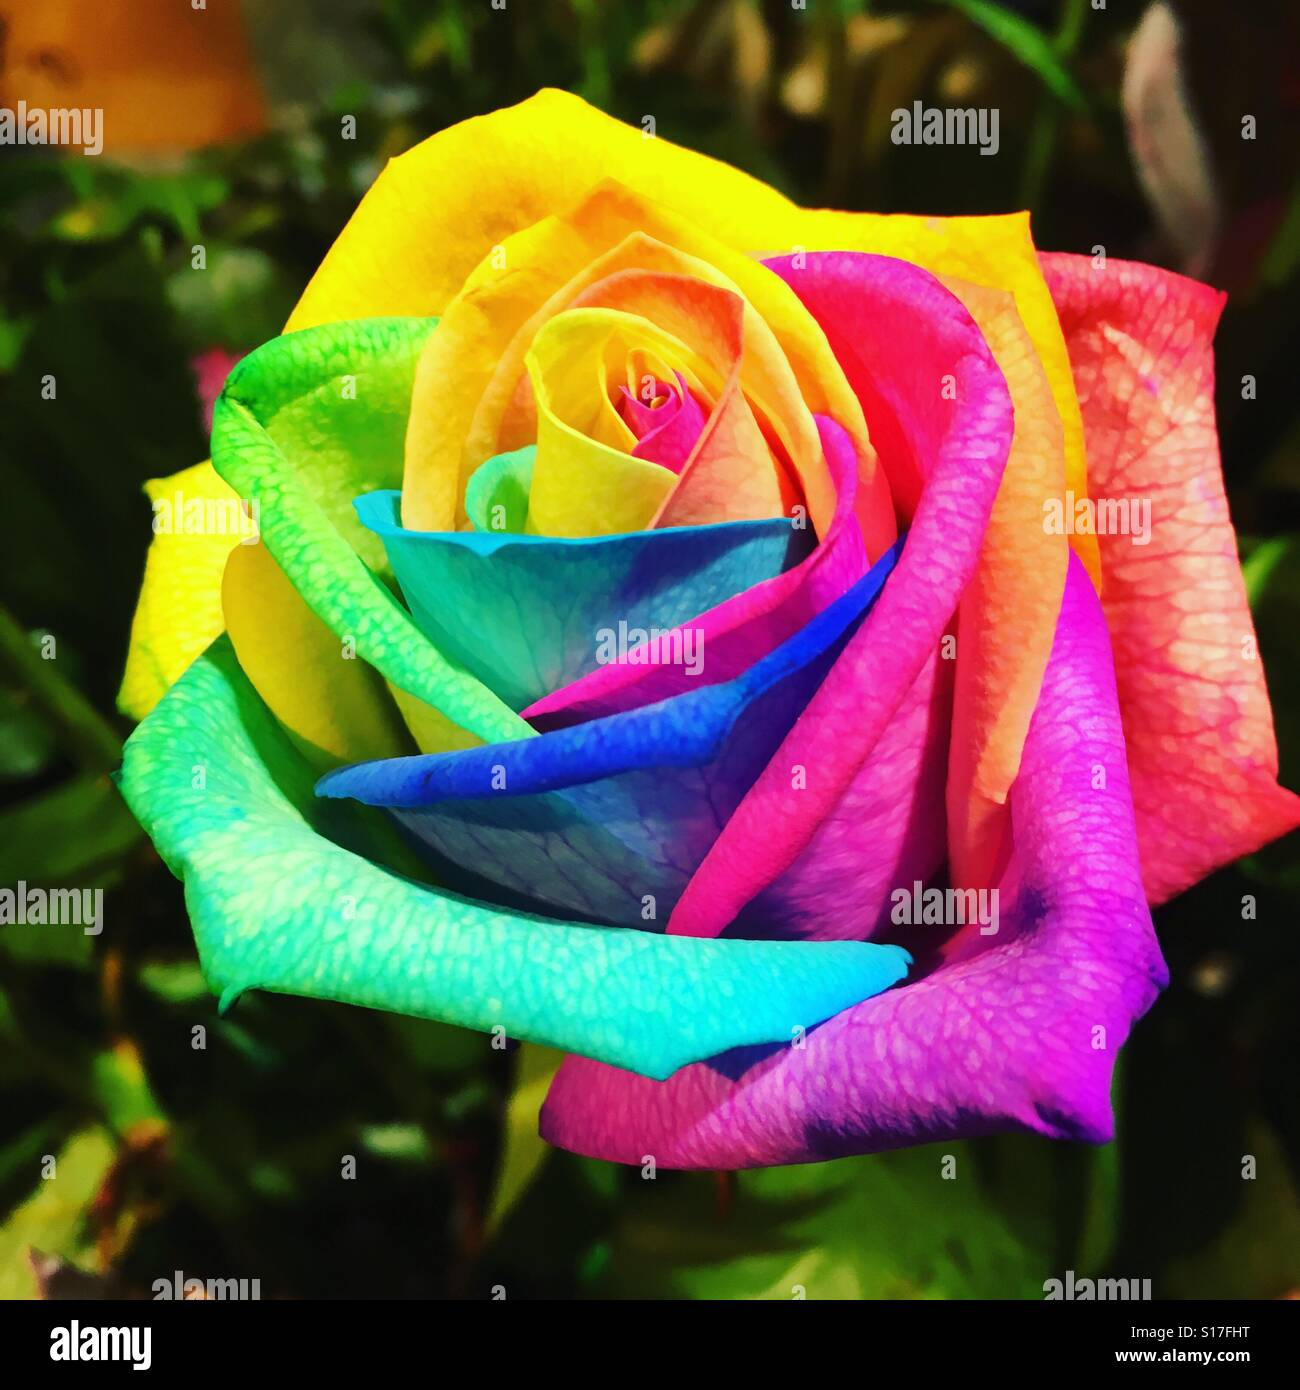 Beautiful multi coloured rose stock photo 310567204 alamy for Multi colored rose petals